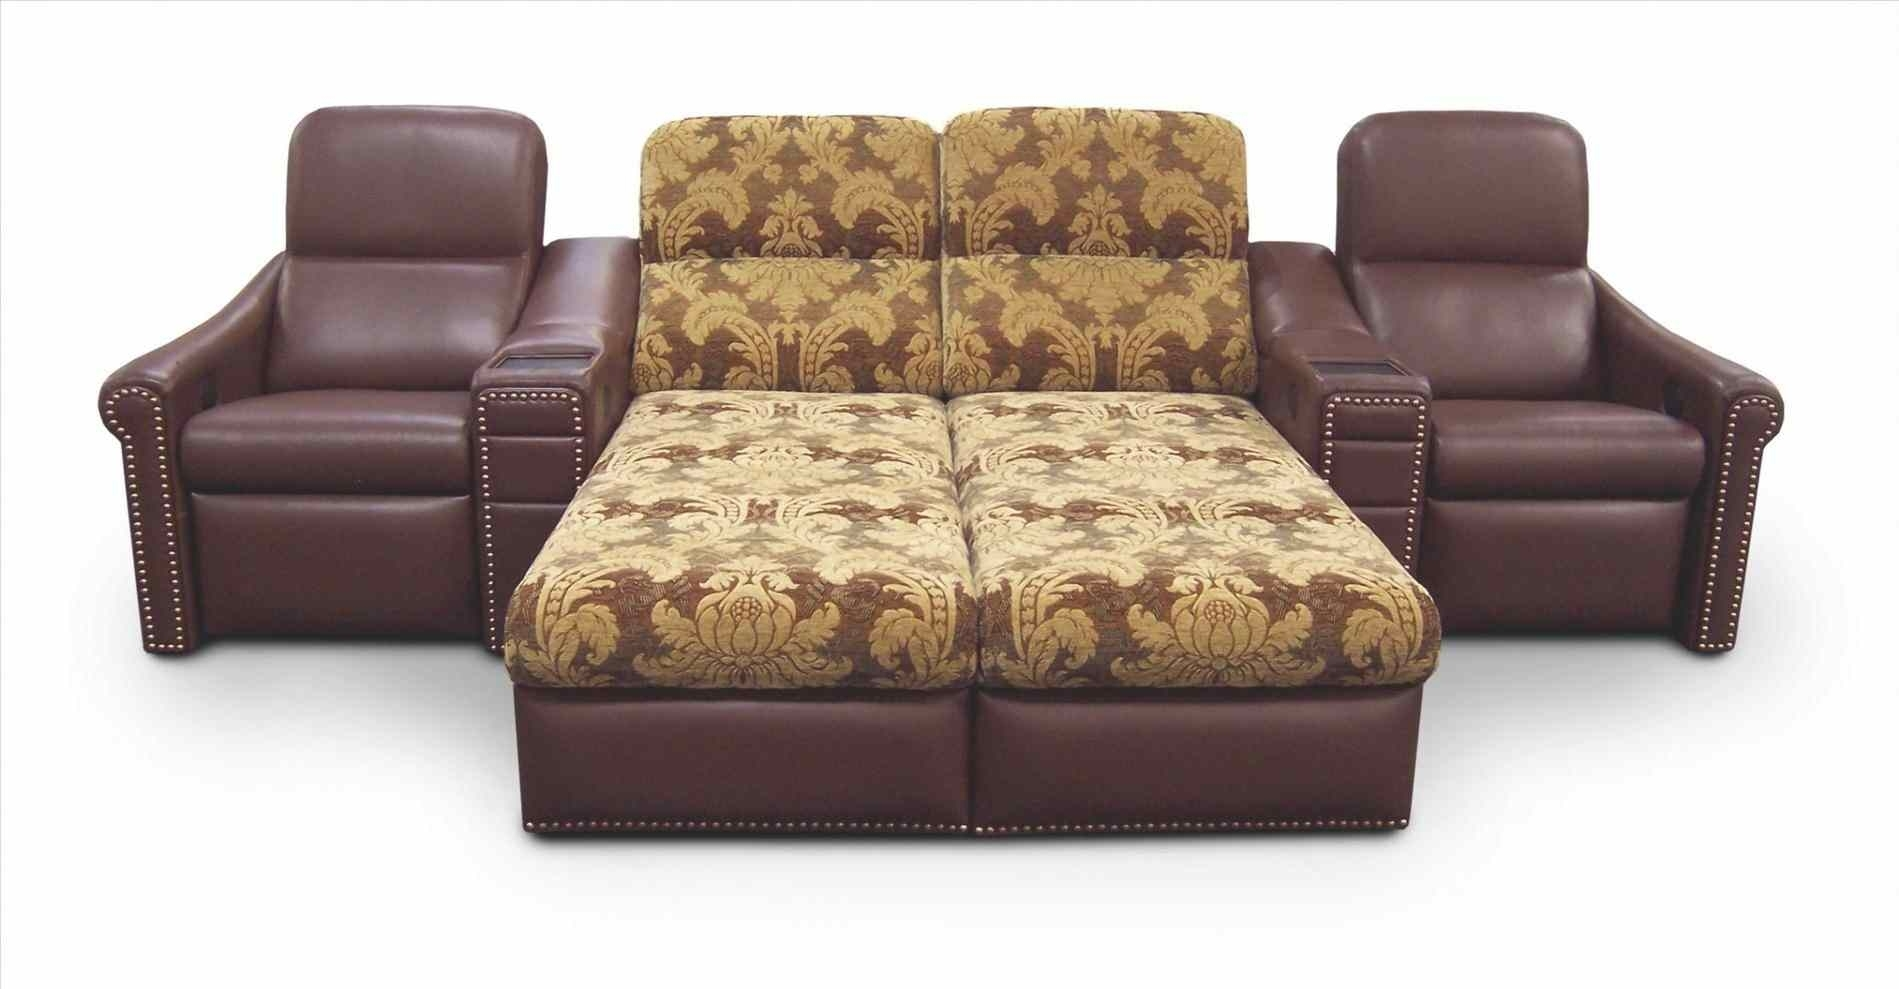 Couch : Furniture Bad Boy Sectional Es Wrap Around Couch Furniture Pertaining To Sectional Sofas At Bad Boy (View 8 of 15)